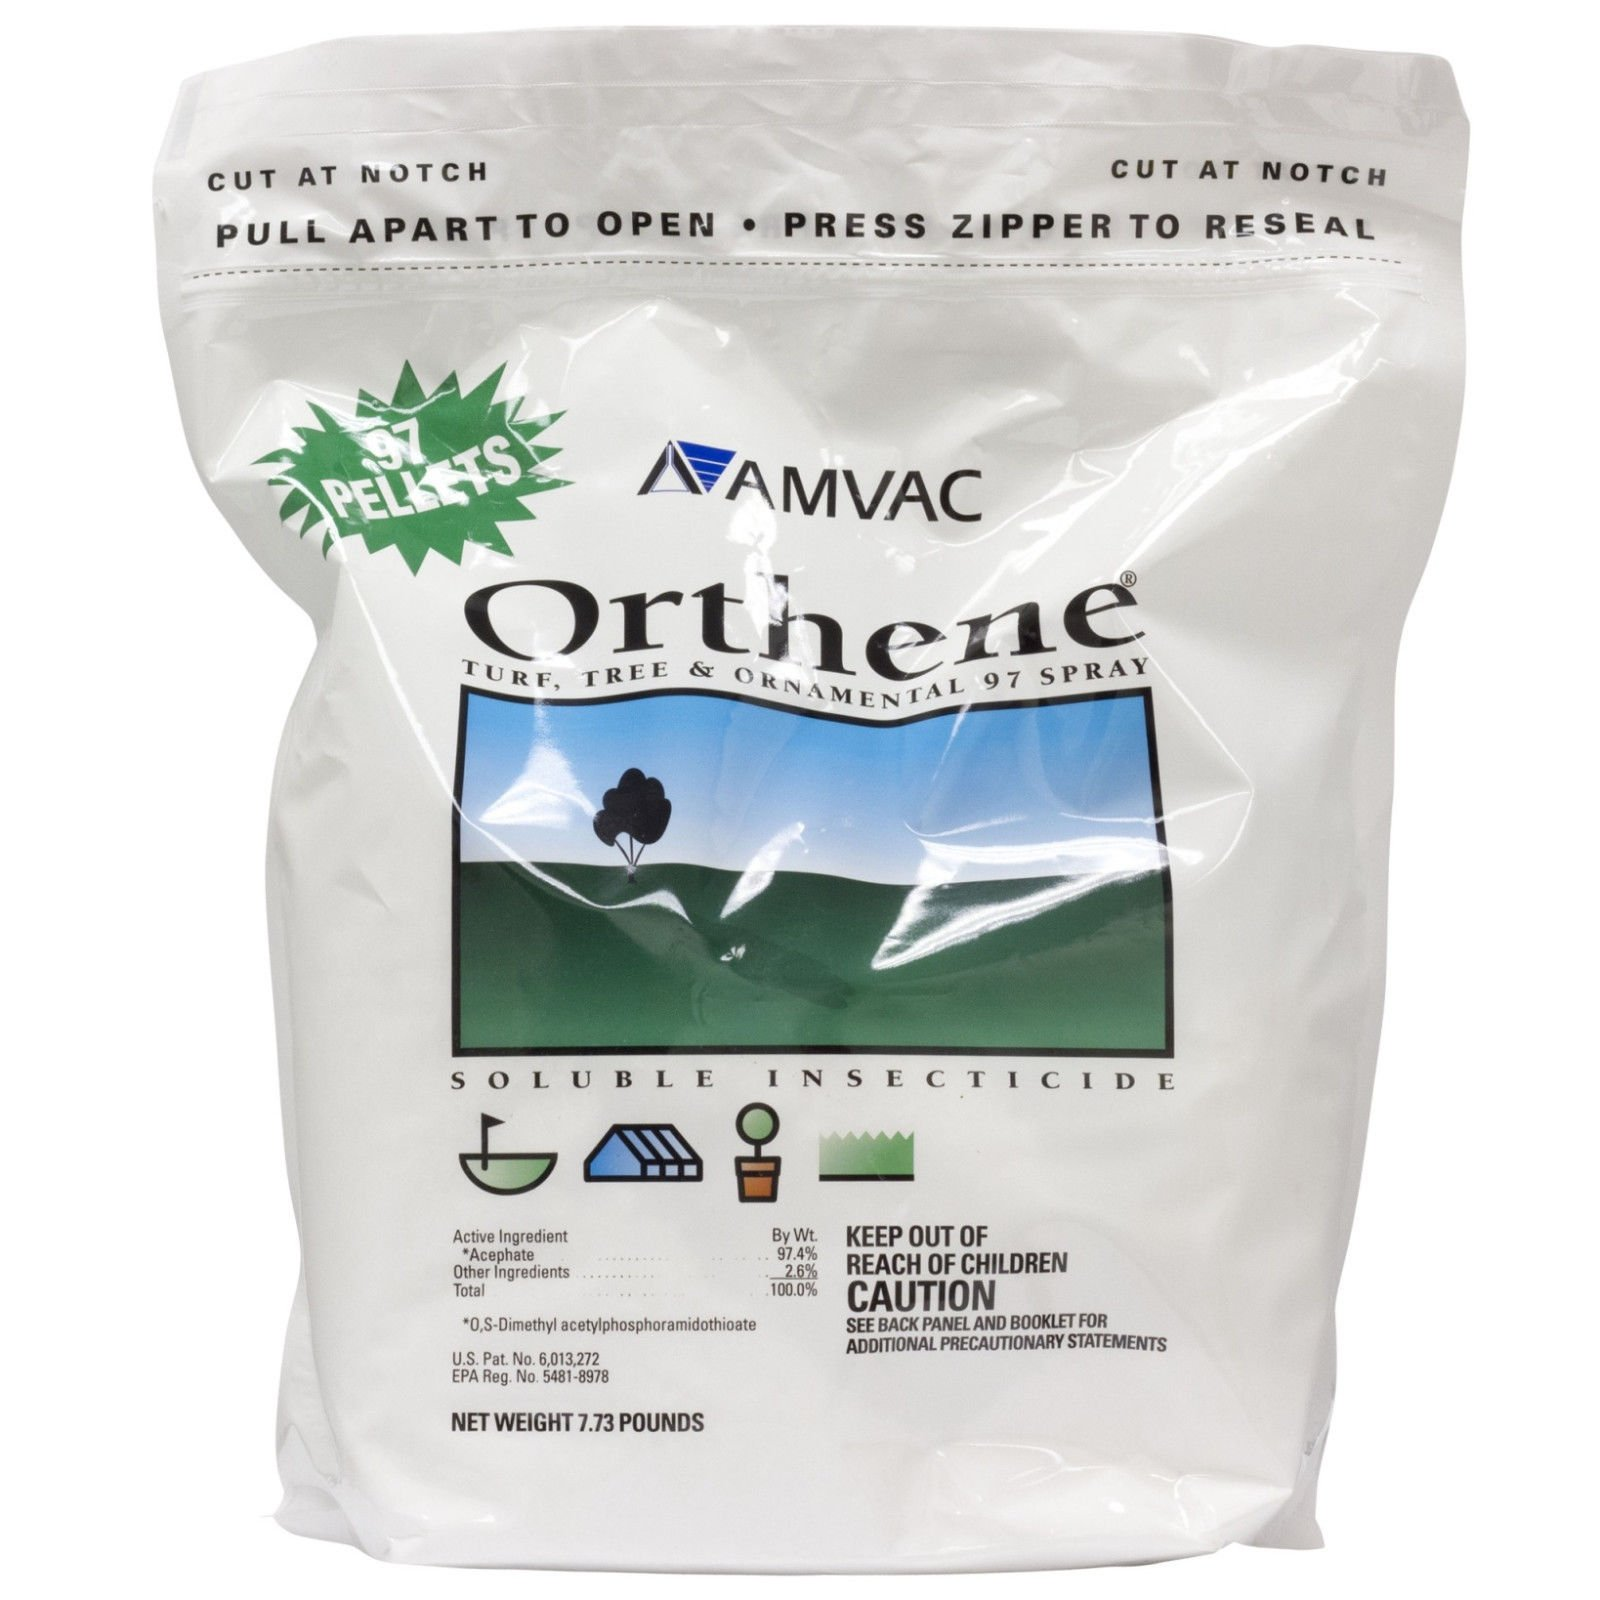 Orthene 97 Spray Insecticide 7.73 Lbs For Pests On Trees Ornamentals And Turf'' by APS